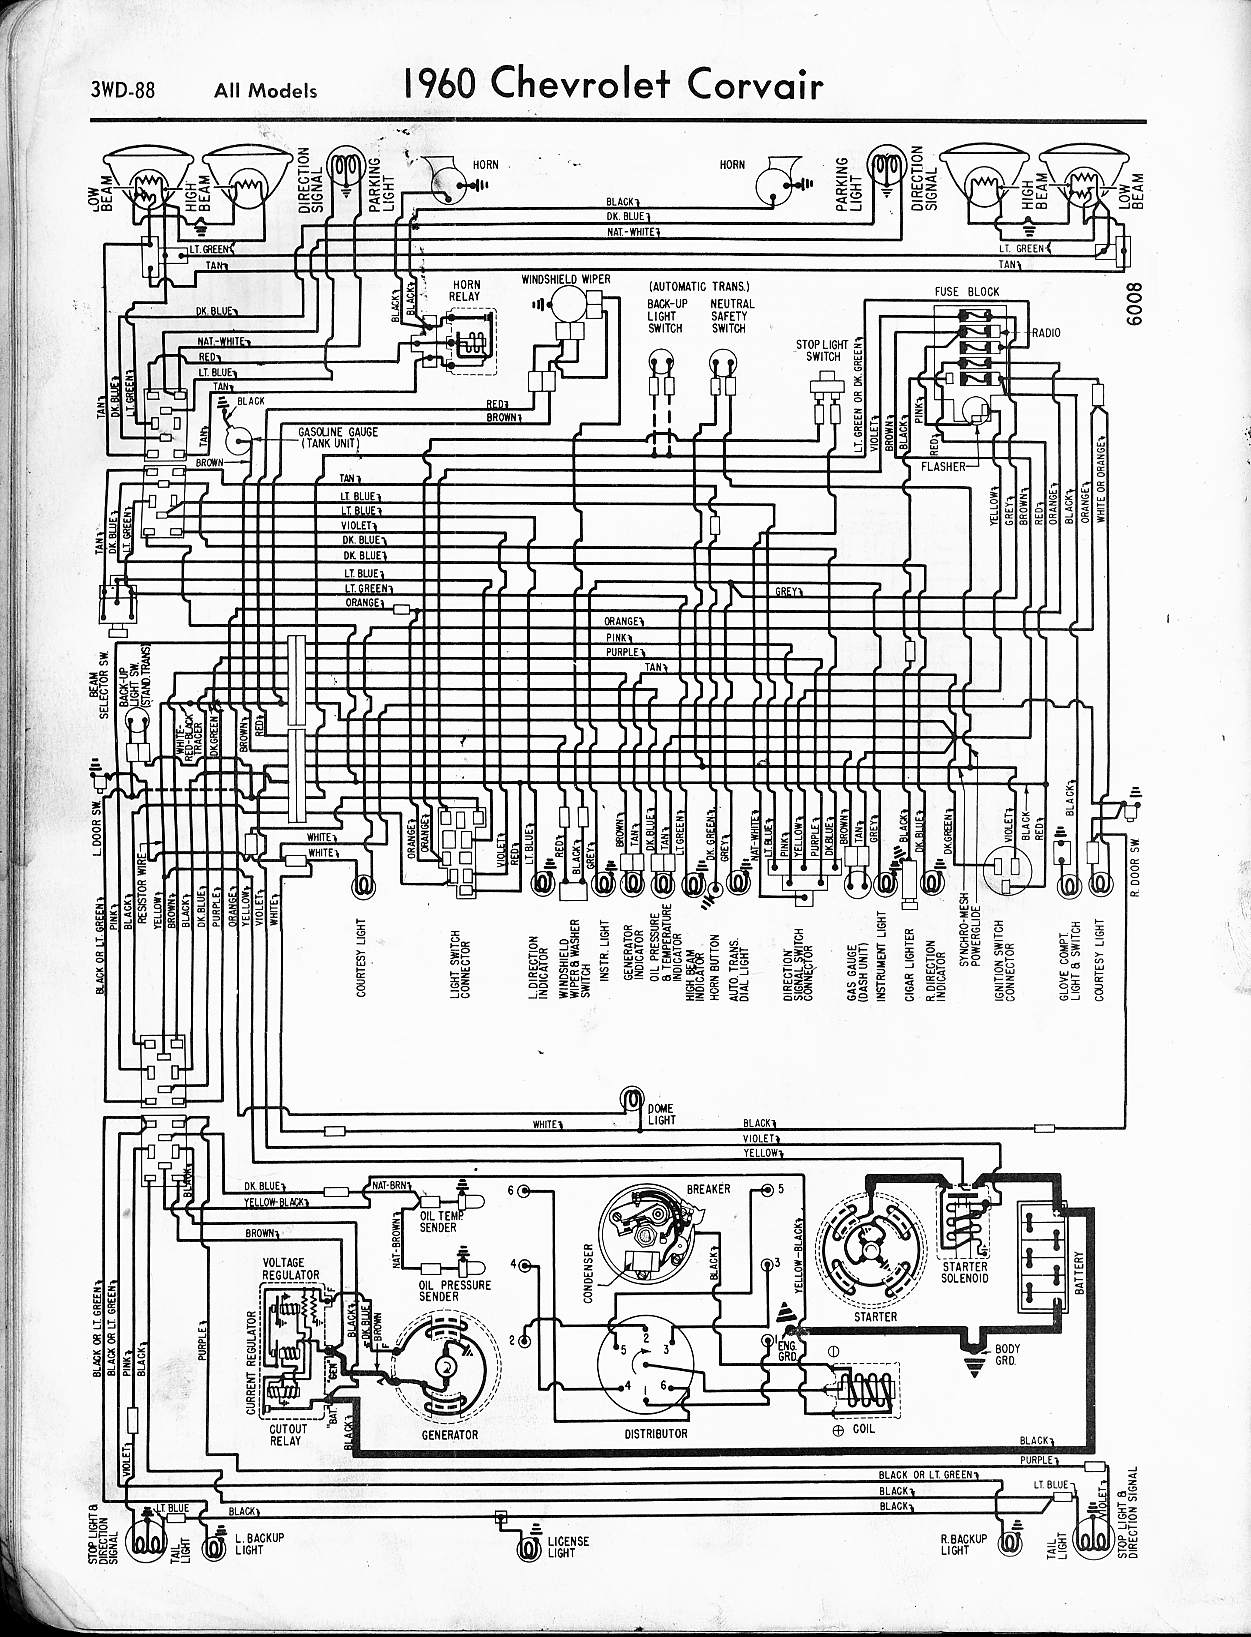 1960 Biscayne Wiring Diagram Reinvent Your 1958 Corvette Instrument Cluster Detailed Schematics Rh Mrskindsclass Com Chevy